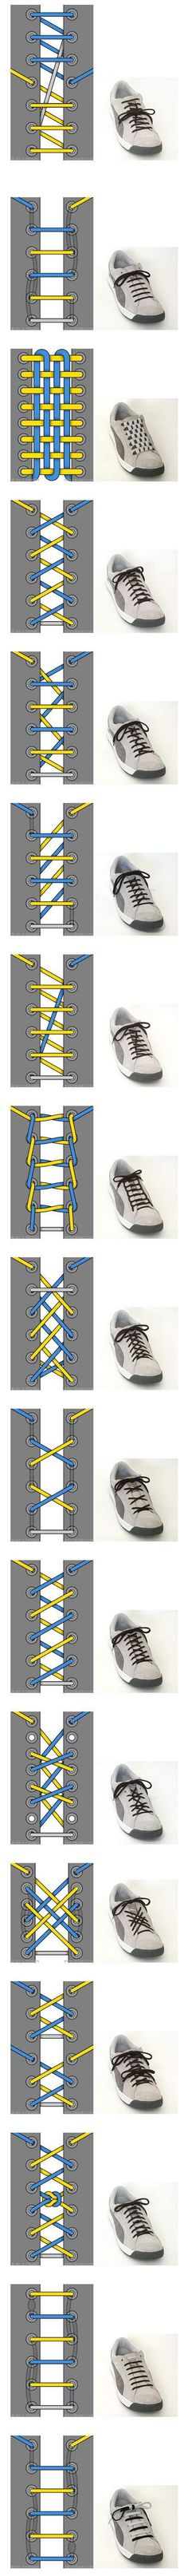 Different Ways Of Trying Your Shoes